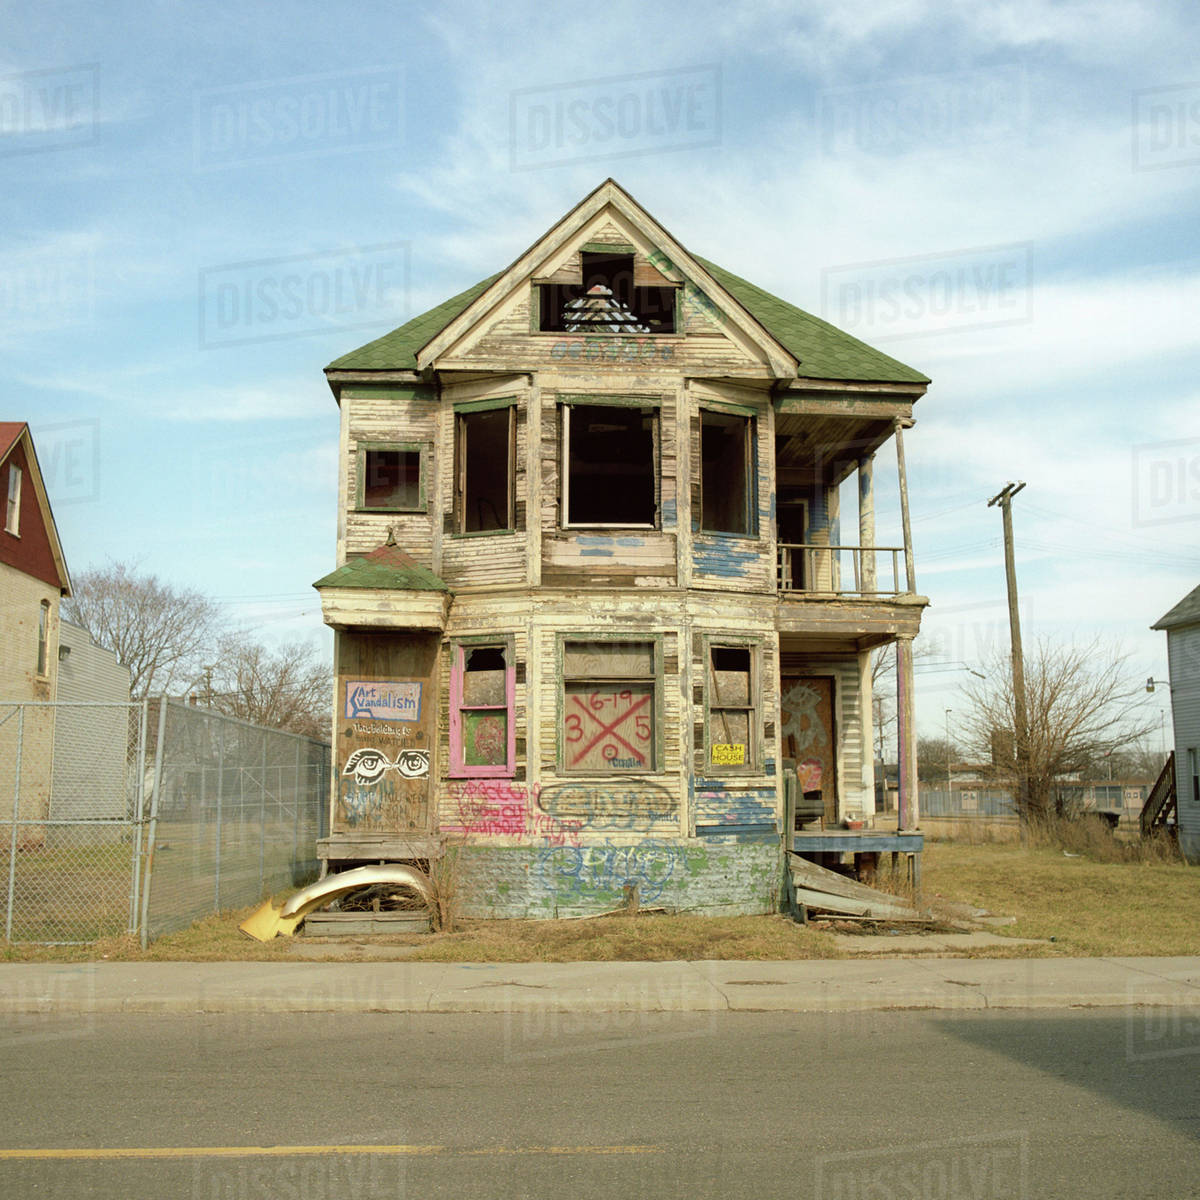 A Run-down, Abandoned House With Graffiti On It, Detroit